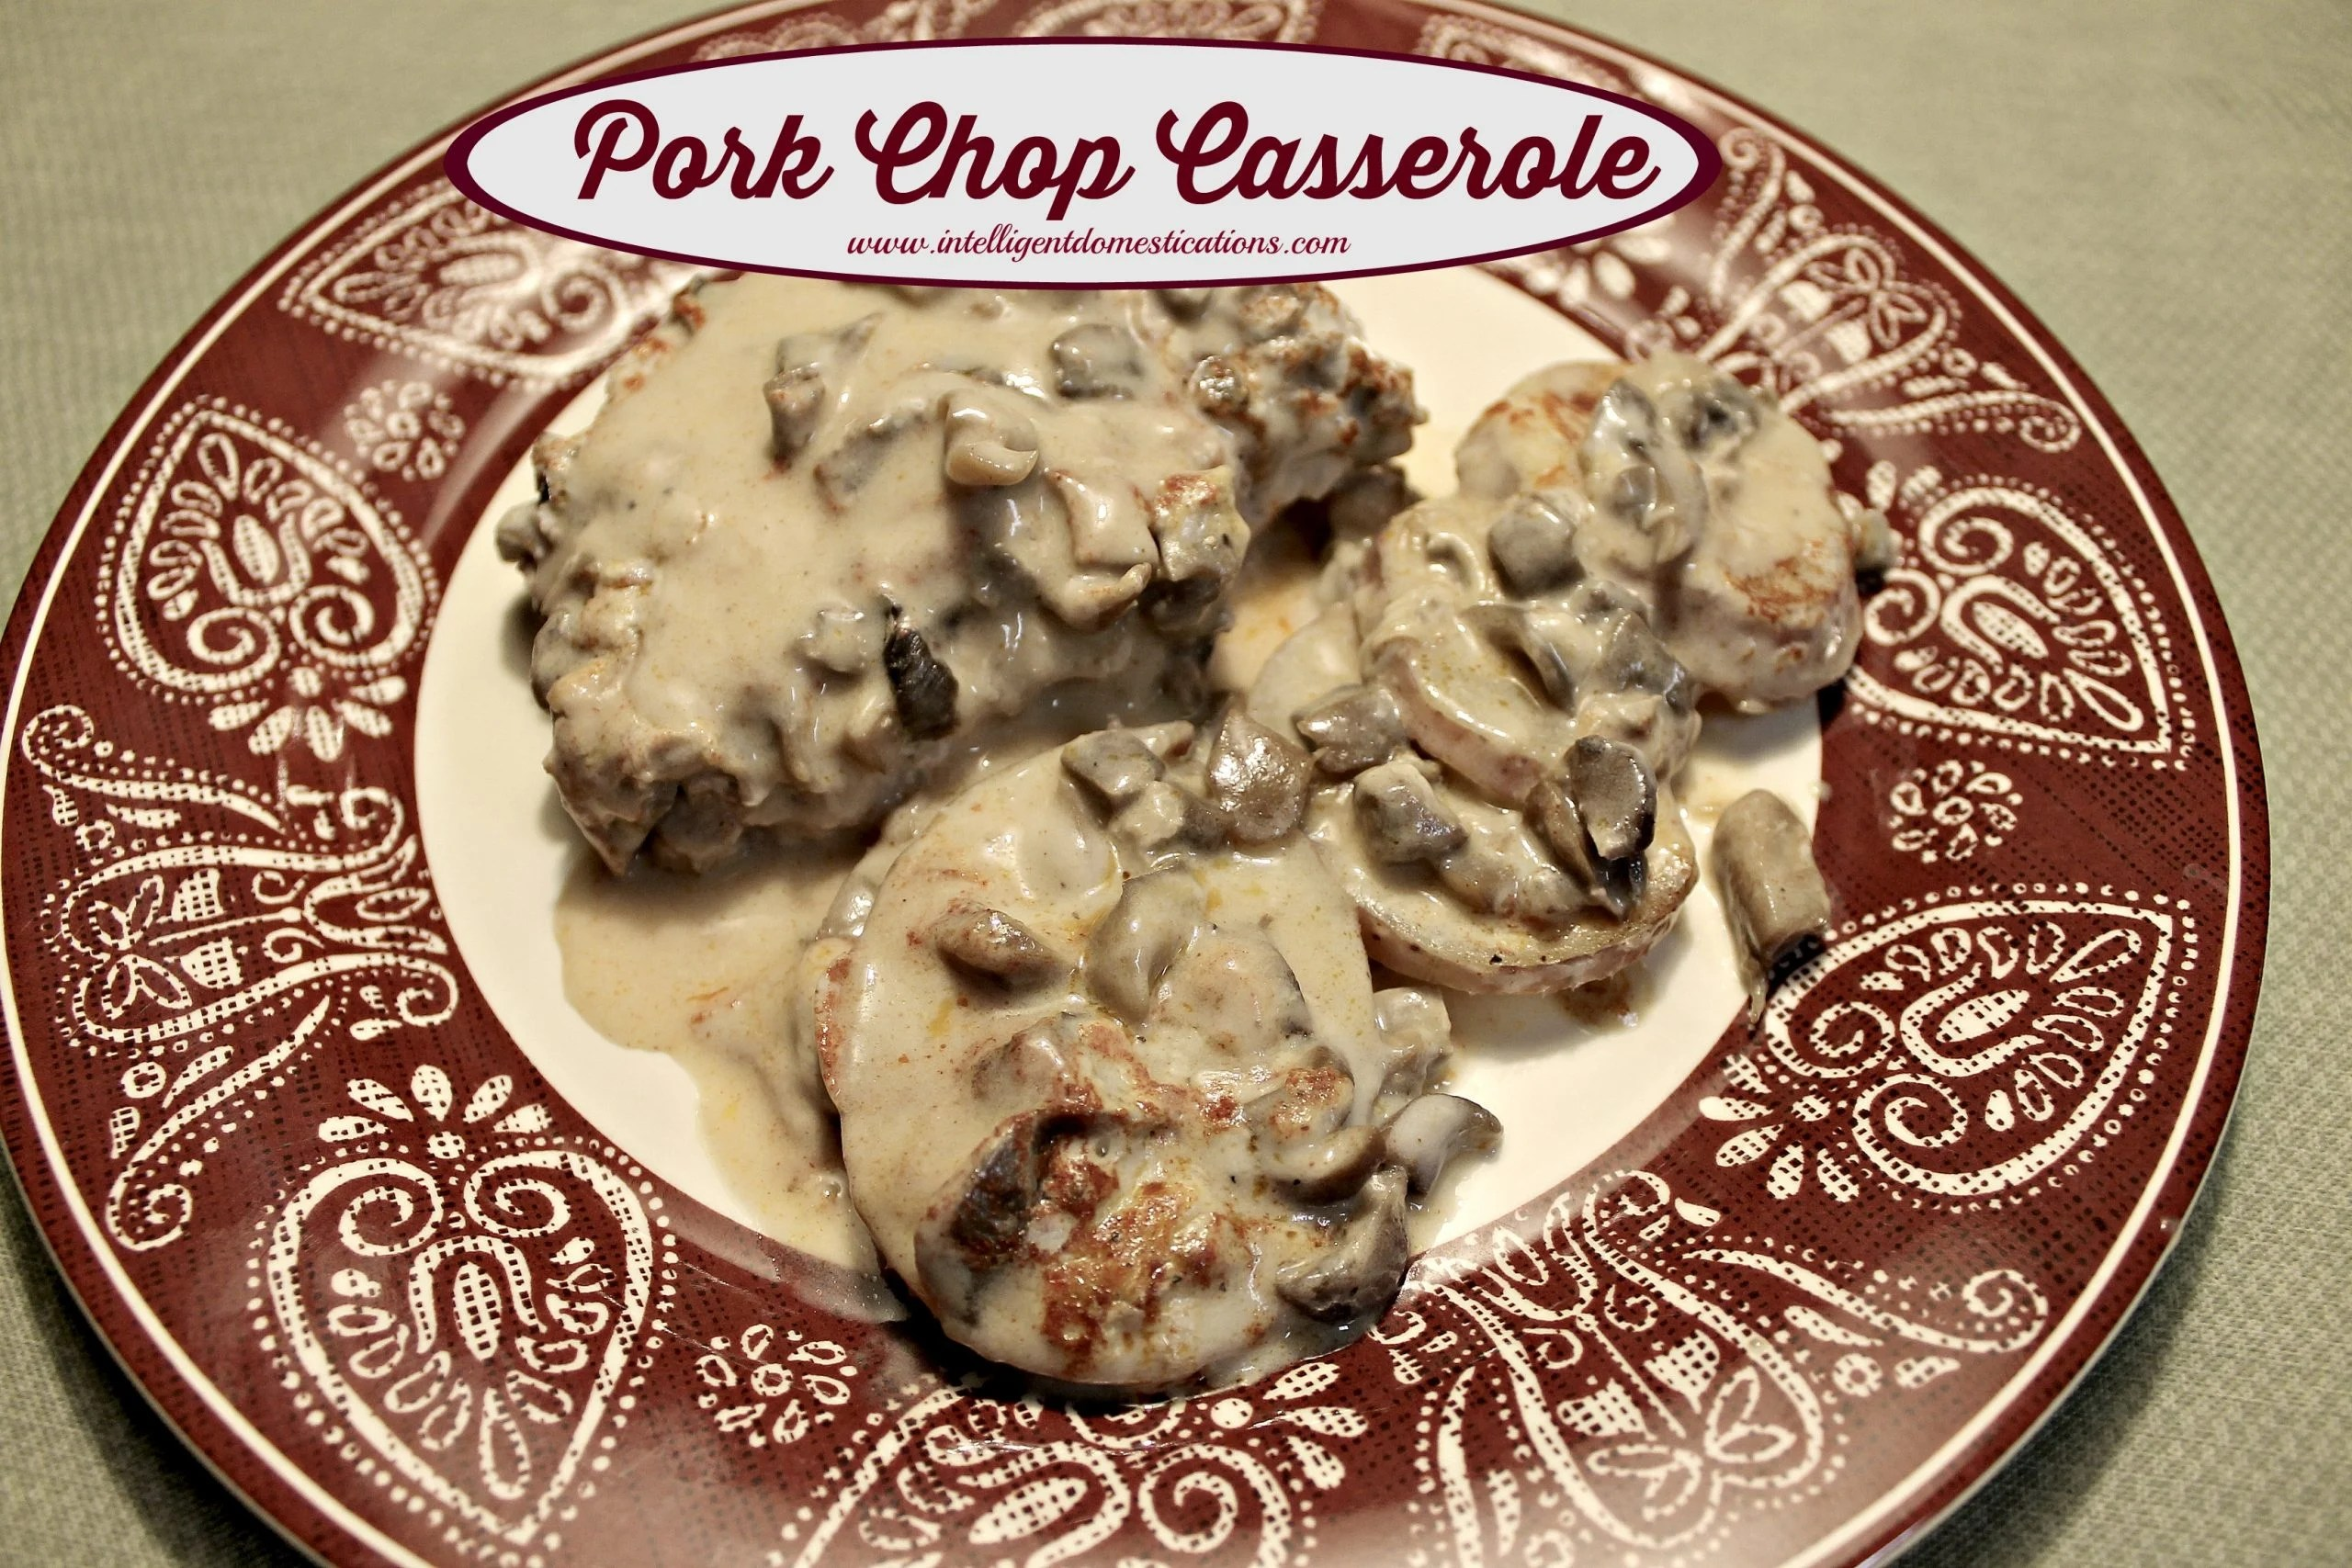 Momma's pork chop casserole served. Fine the recipe at www.intelligentdomestications.com